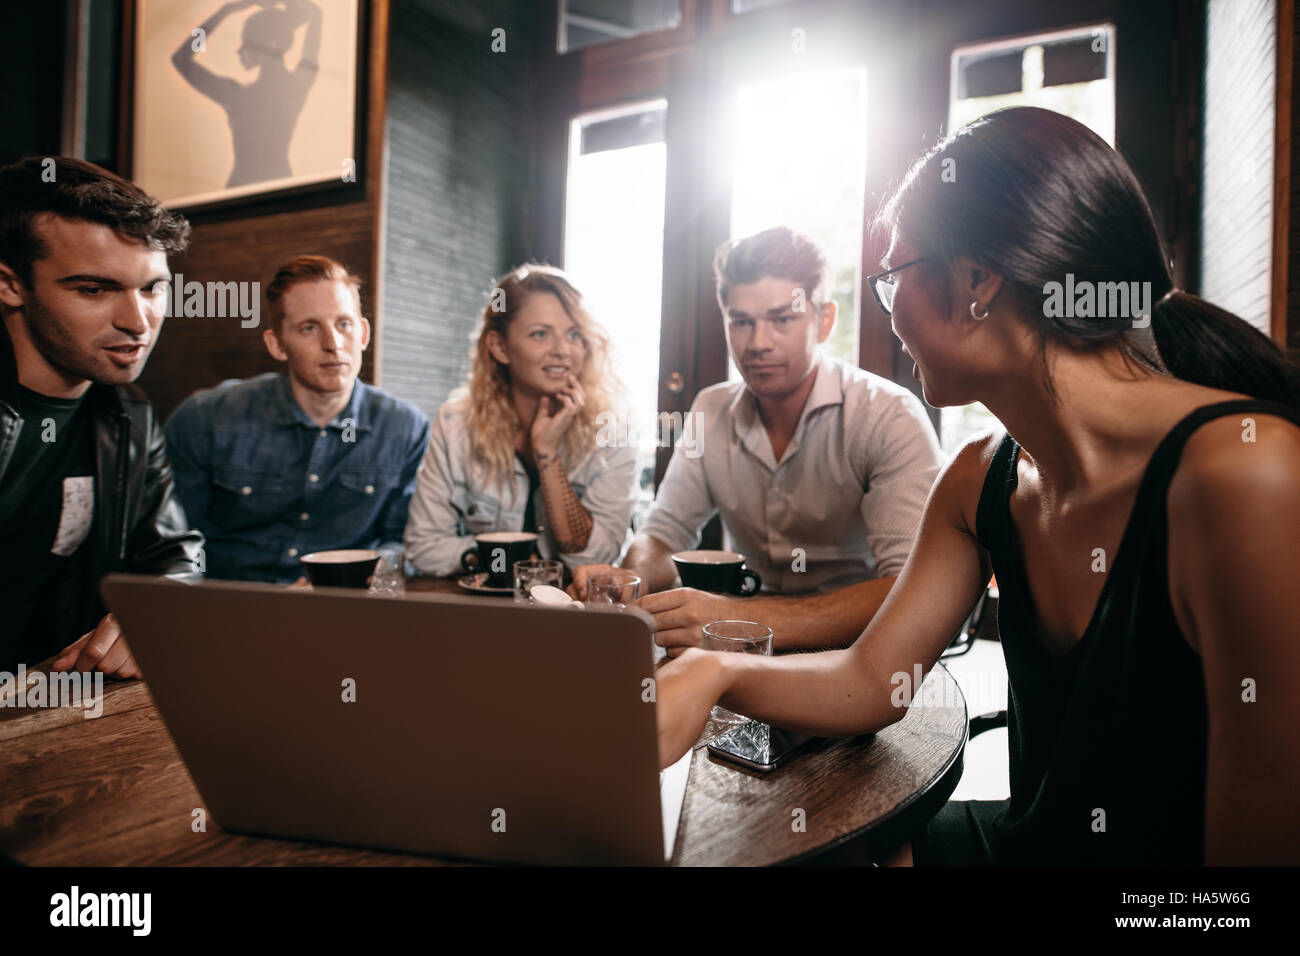 Smiling friends spending their time in coffee shop and discussing something while looking at laptop. Woman showing - Stock Image